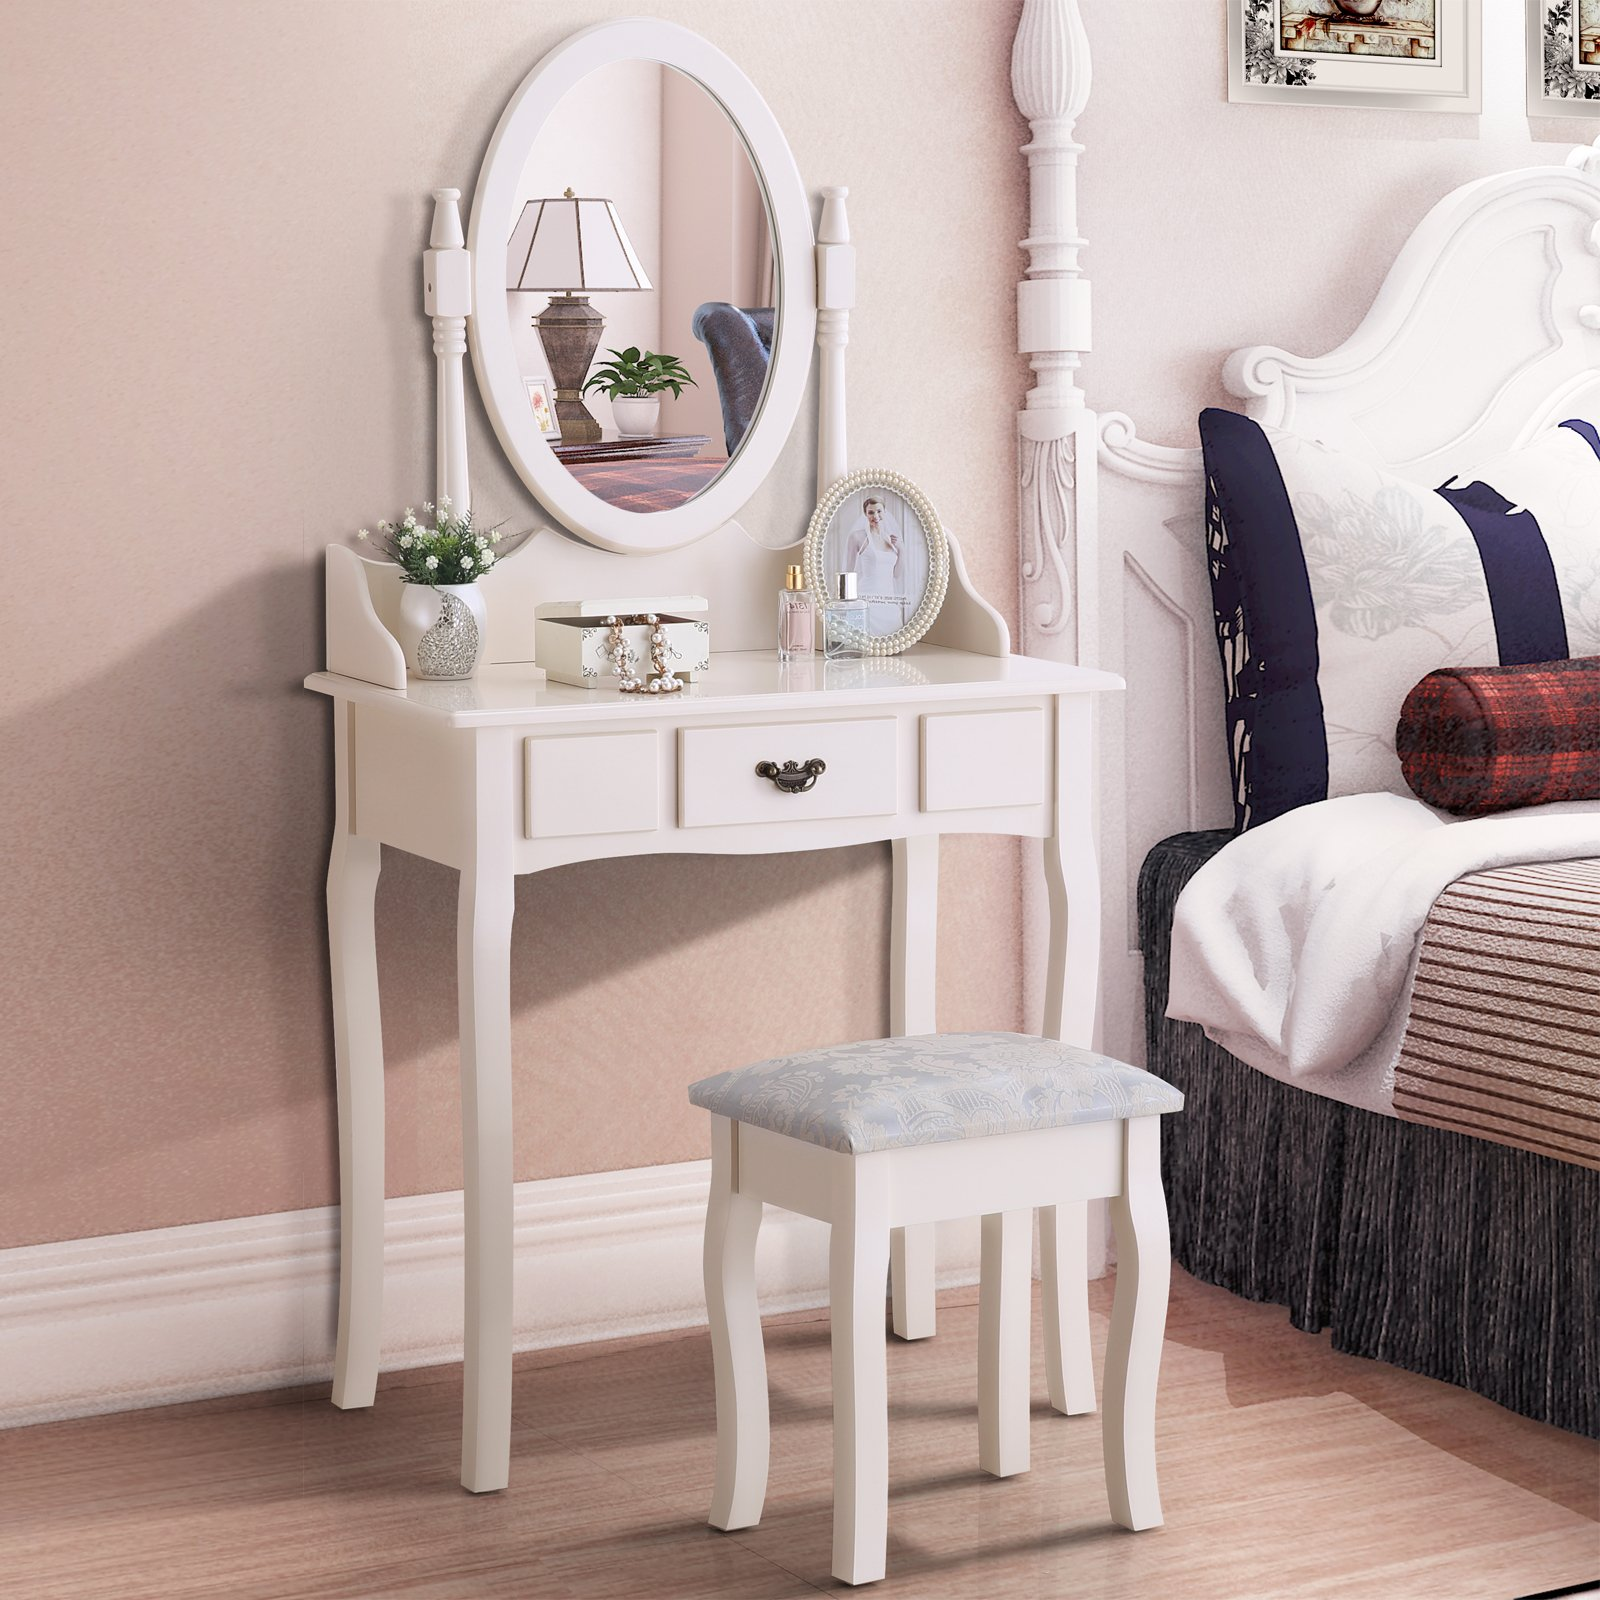 GTM Vanity Table Set Makeup Desk with Stool and Oval Mirror , Ivory